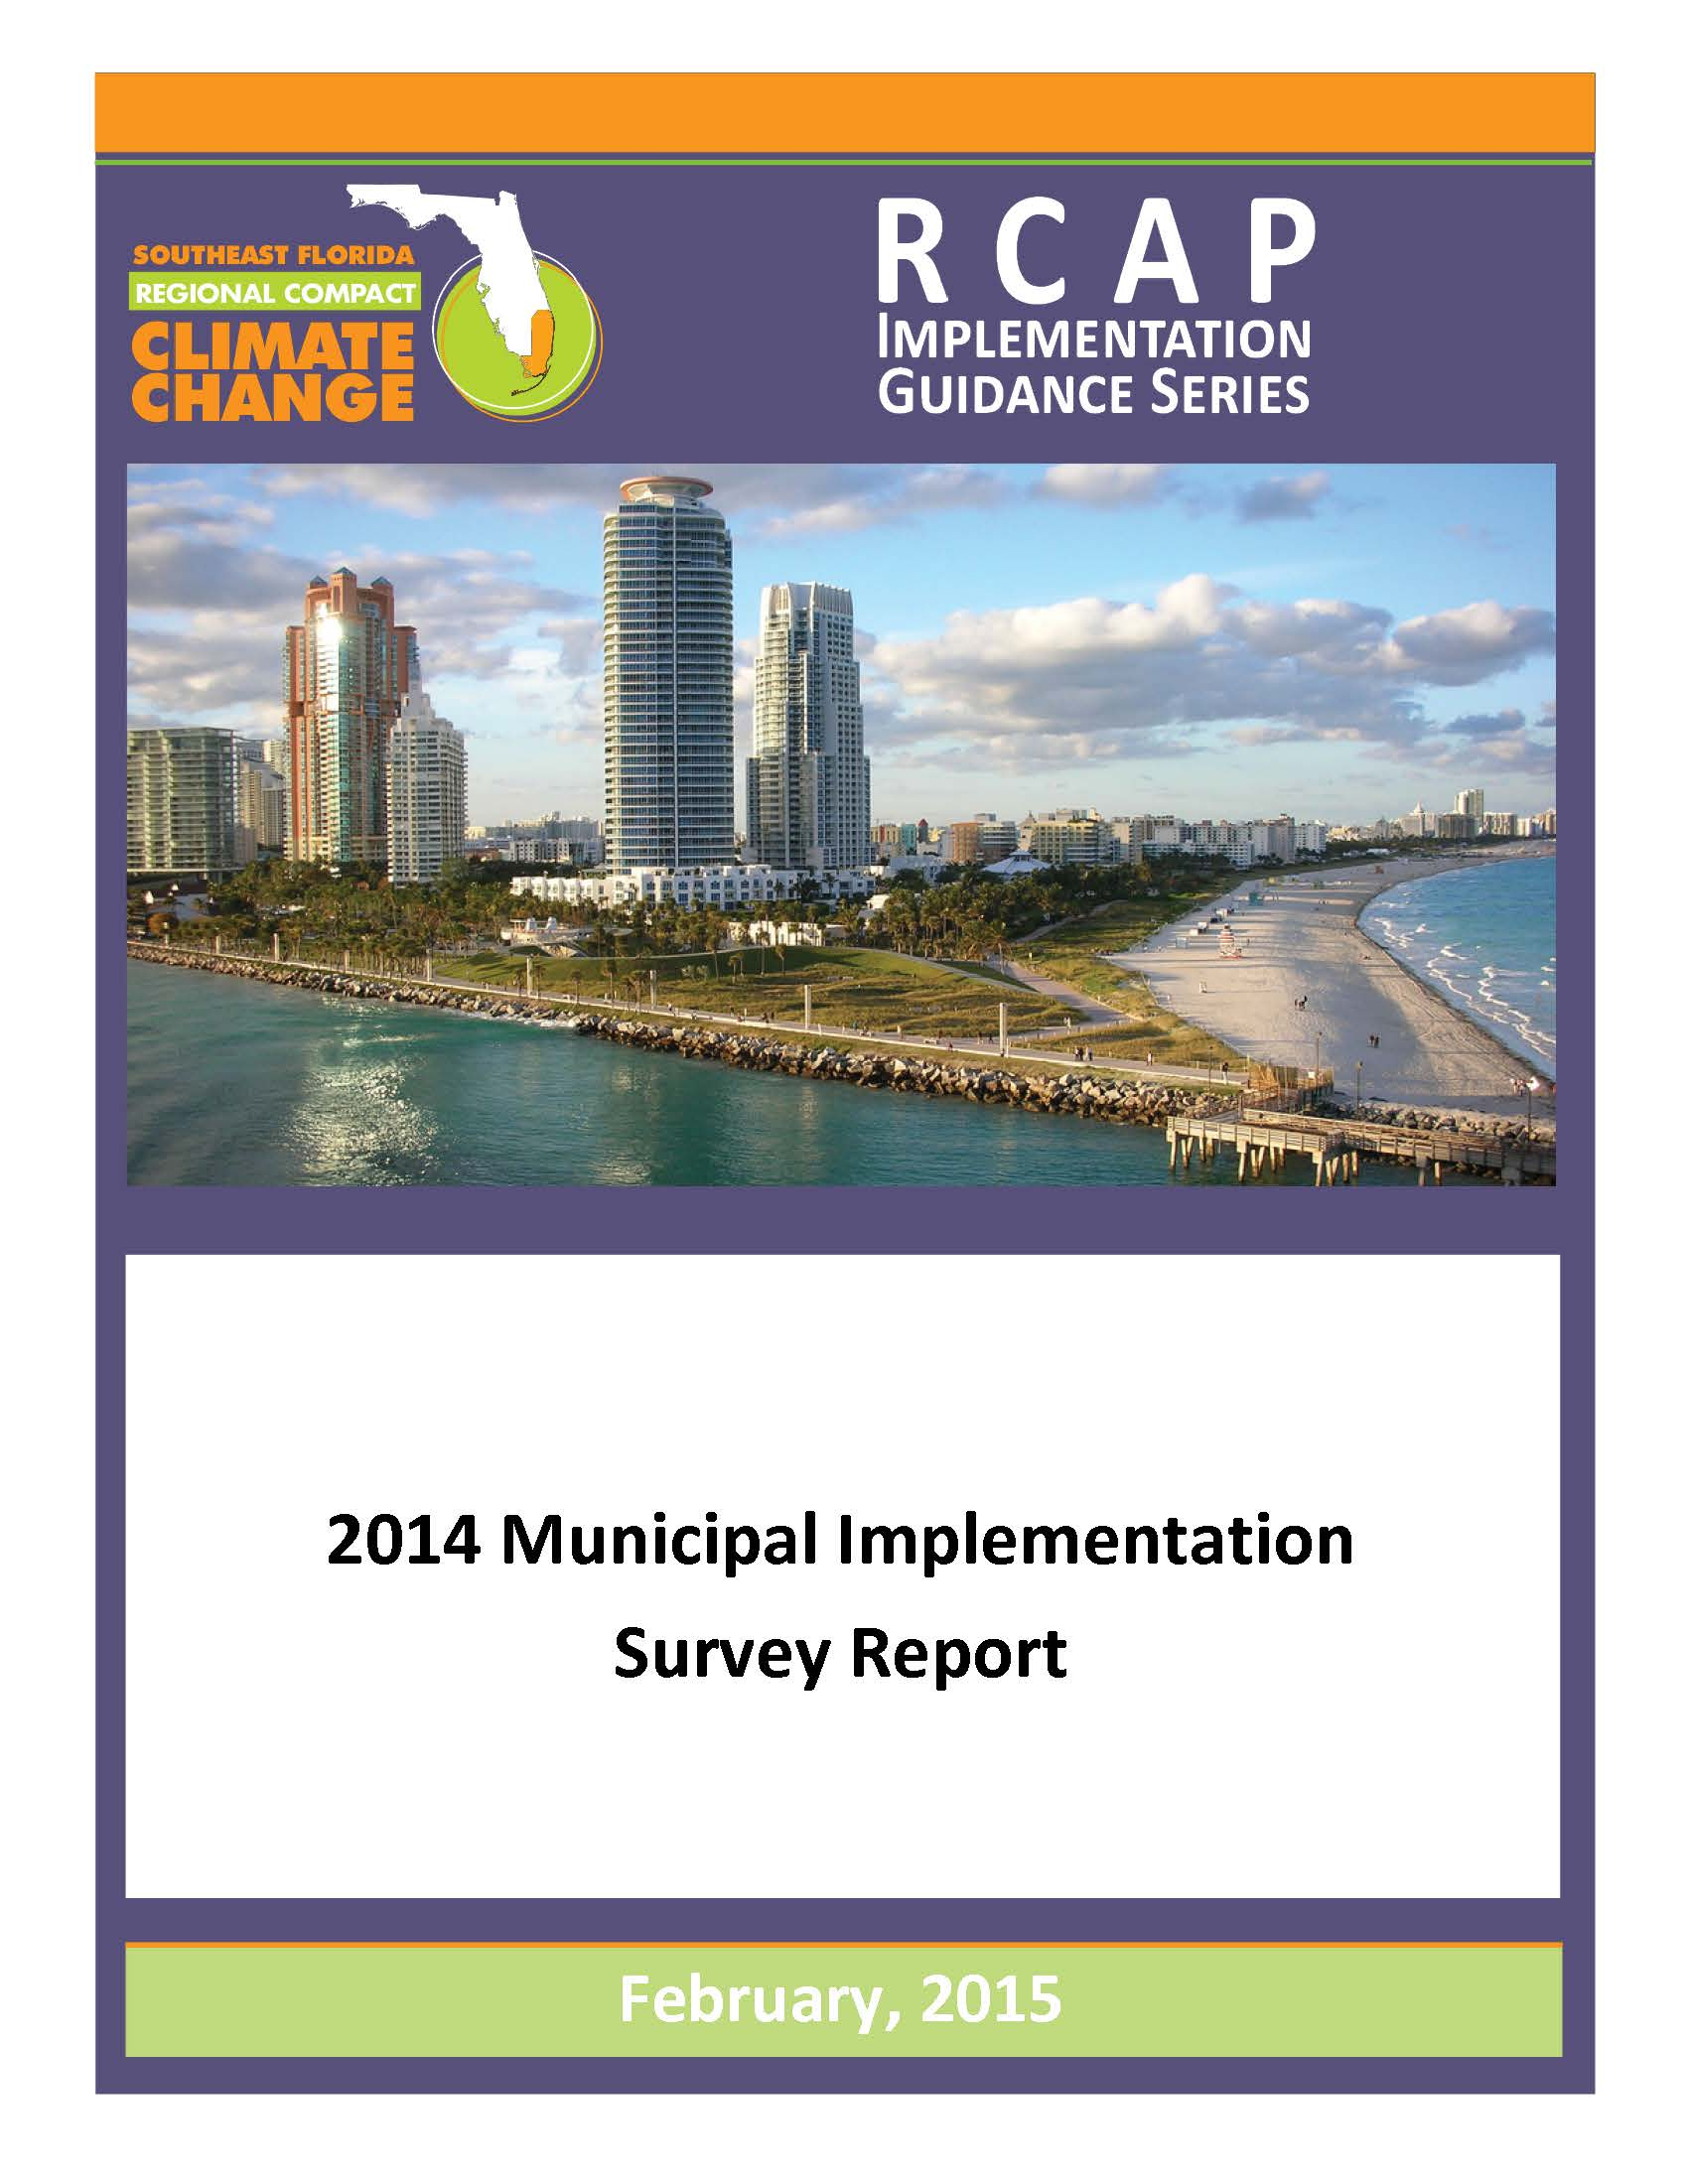 http://www.southeastfloridaclimatecompact.org/wp-content/uploads/2015/02/2015-survey-report.jpg